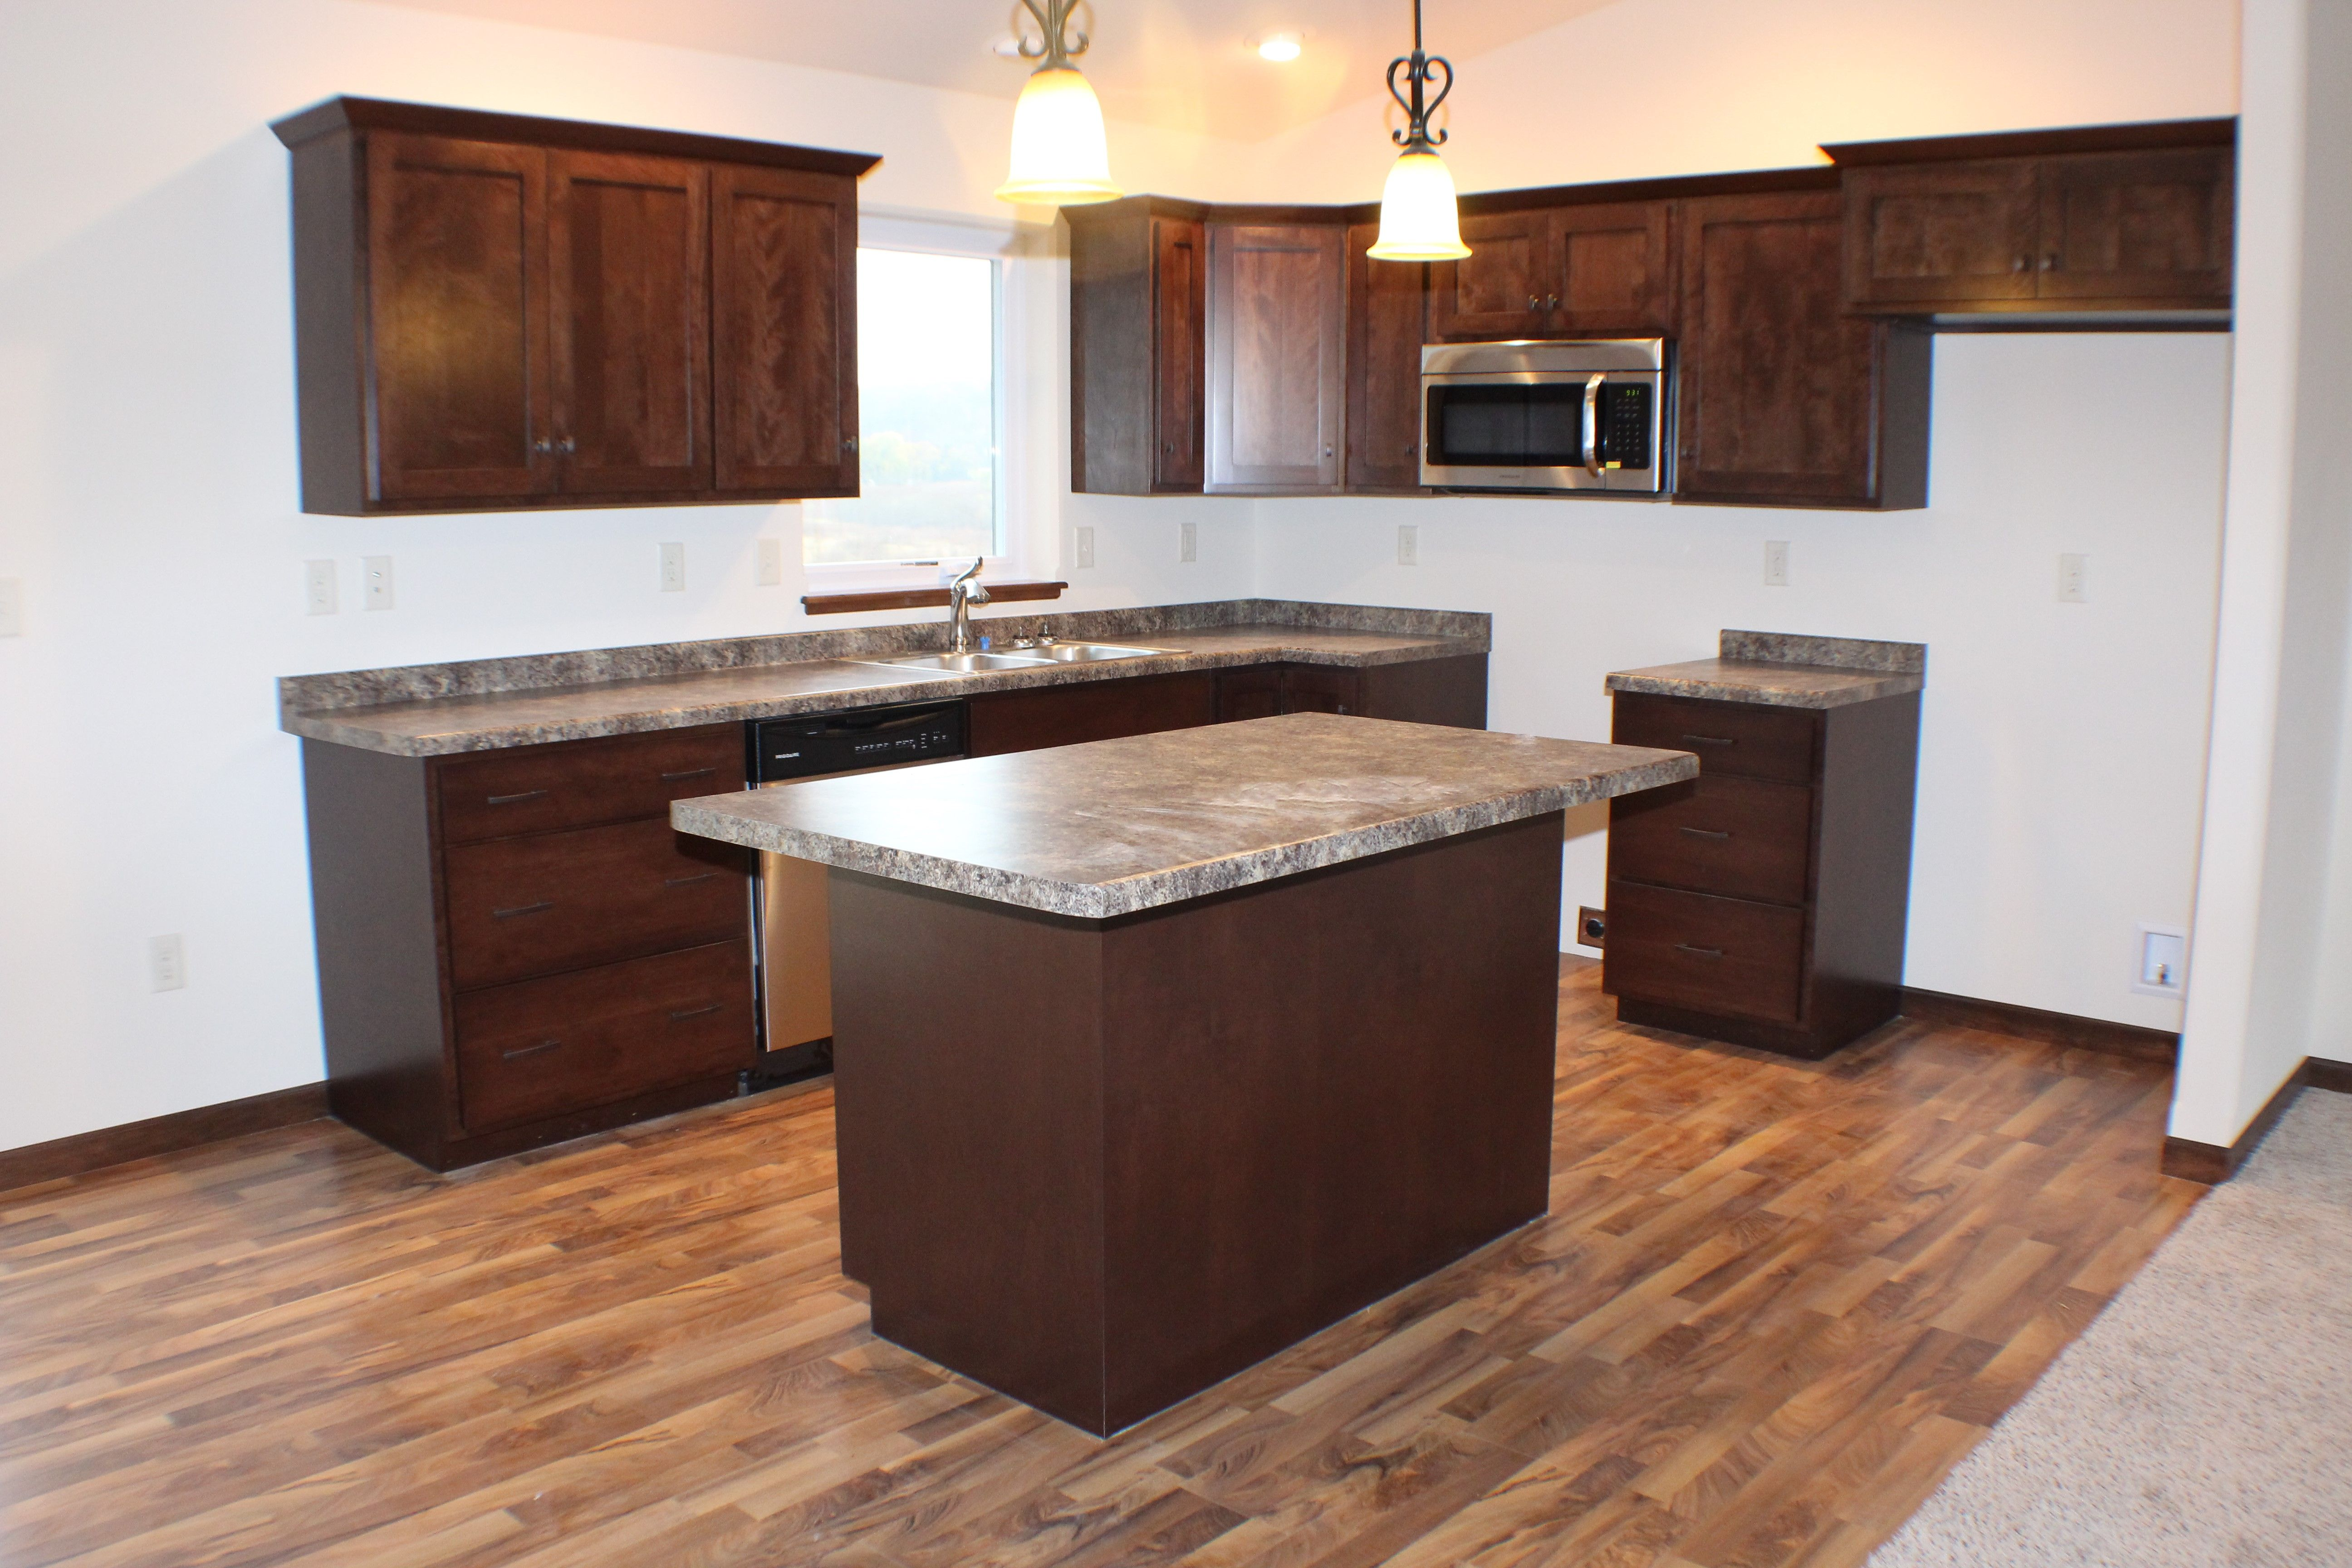 Bv6 Cabinet Stain Shades Of Fall Cabinet Style Mission Countertop Formica Jamocha Granite Flooring Italian Wa With Images Staining Cabinets Cabinet Styles Flooring